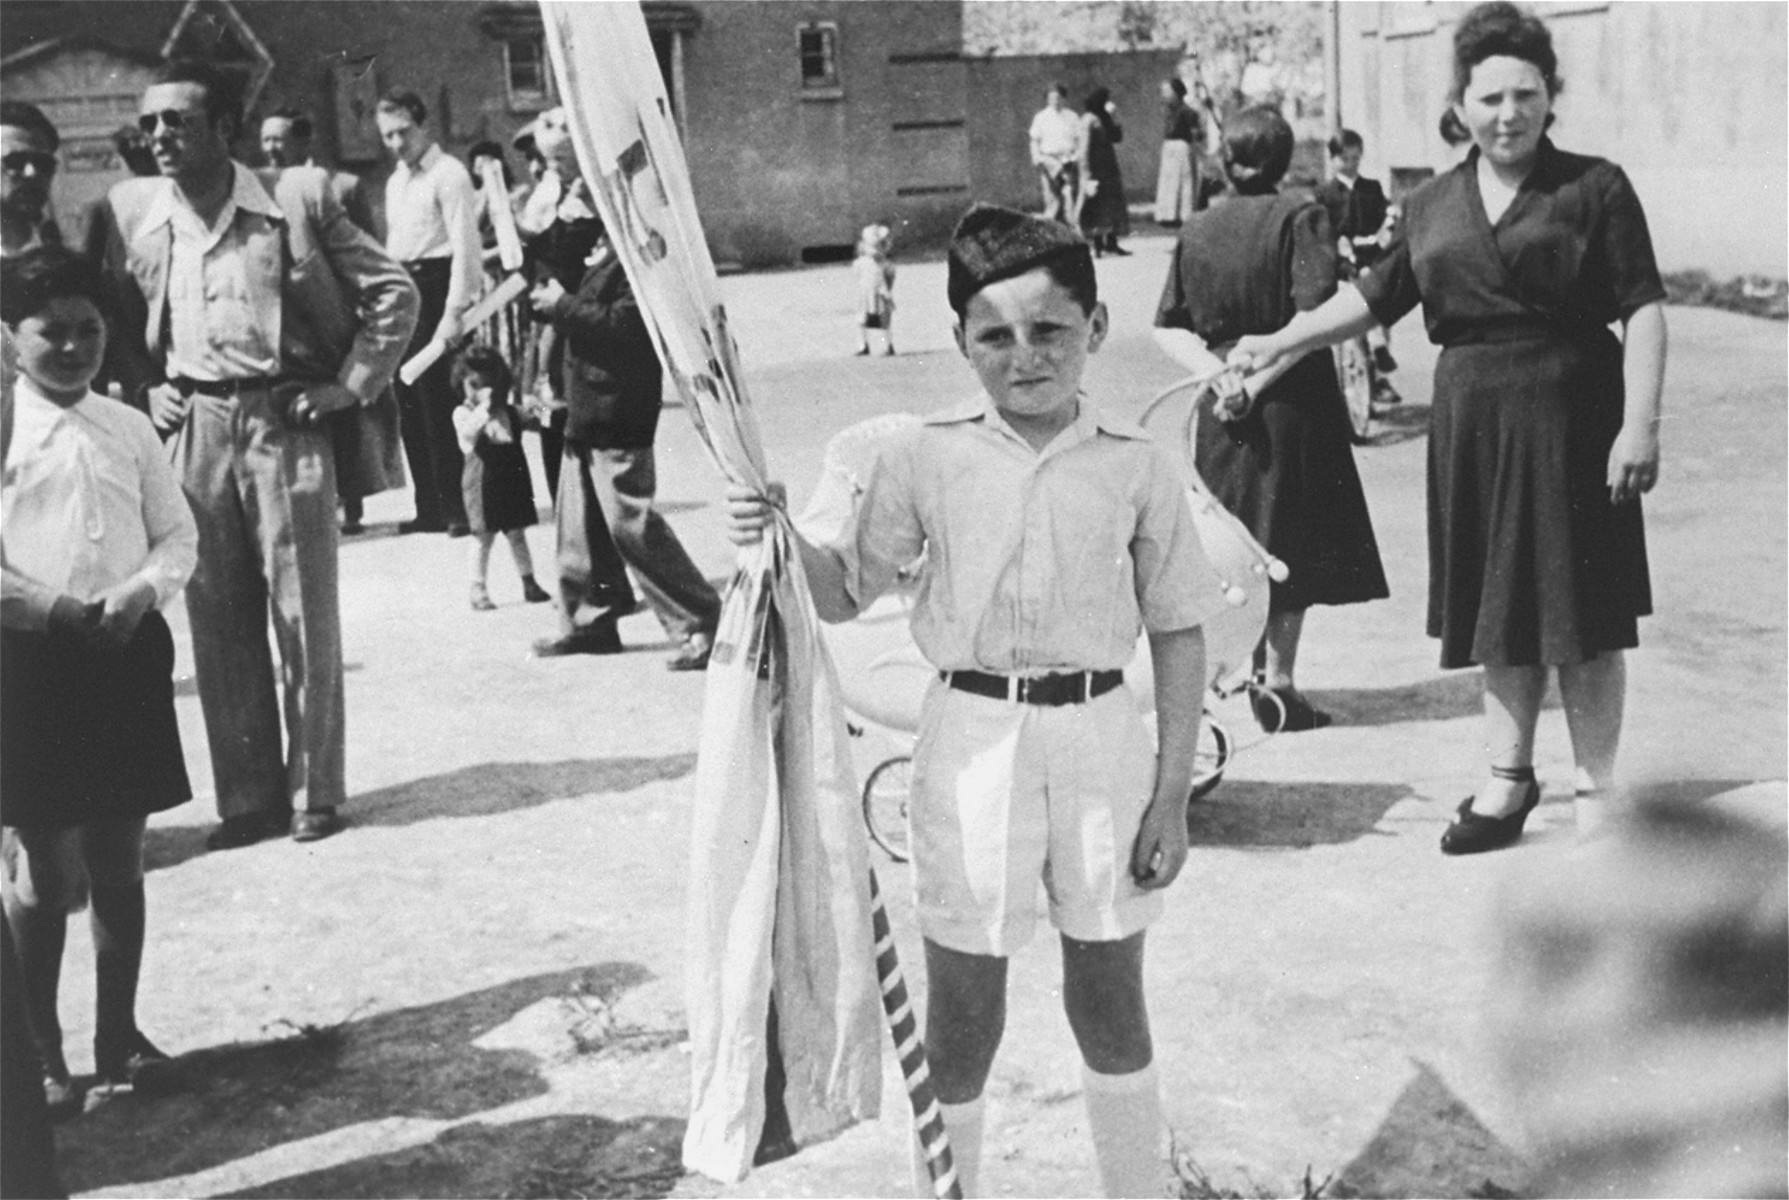 A young Jewish DP child, dressed in the uniform of the Betar Zionist movement, poses with a flag during a ceremony celebrating the establishment of the State of Israel at the Heidenheim displaced persons camp.  Pictured is Itzhak Gersten.  His aunt, Basia, stands on the right.